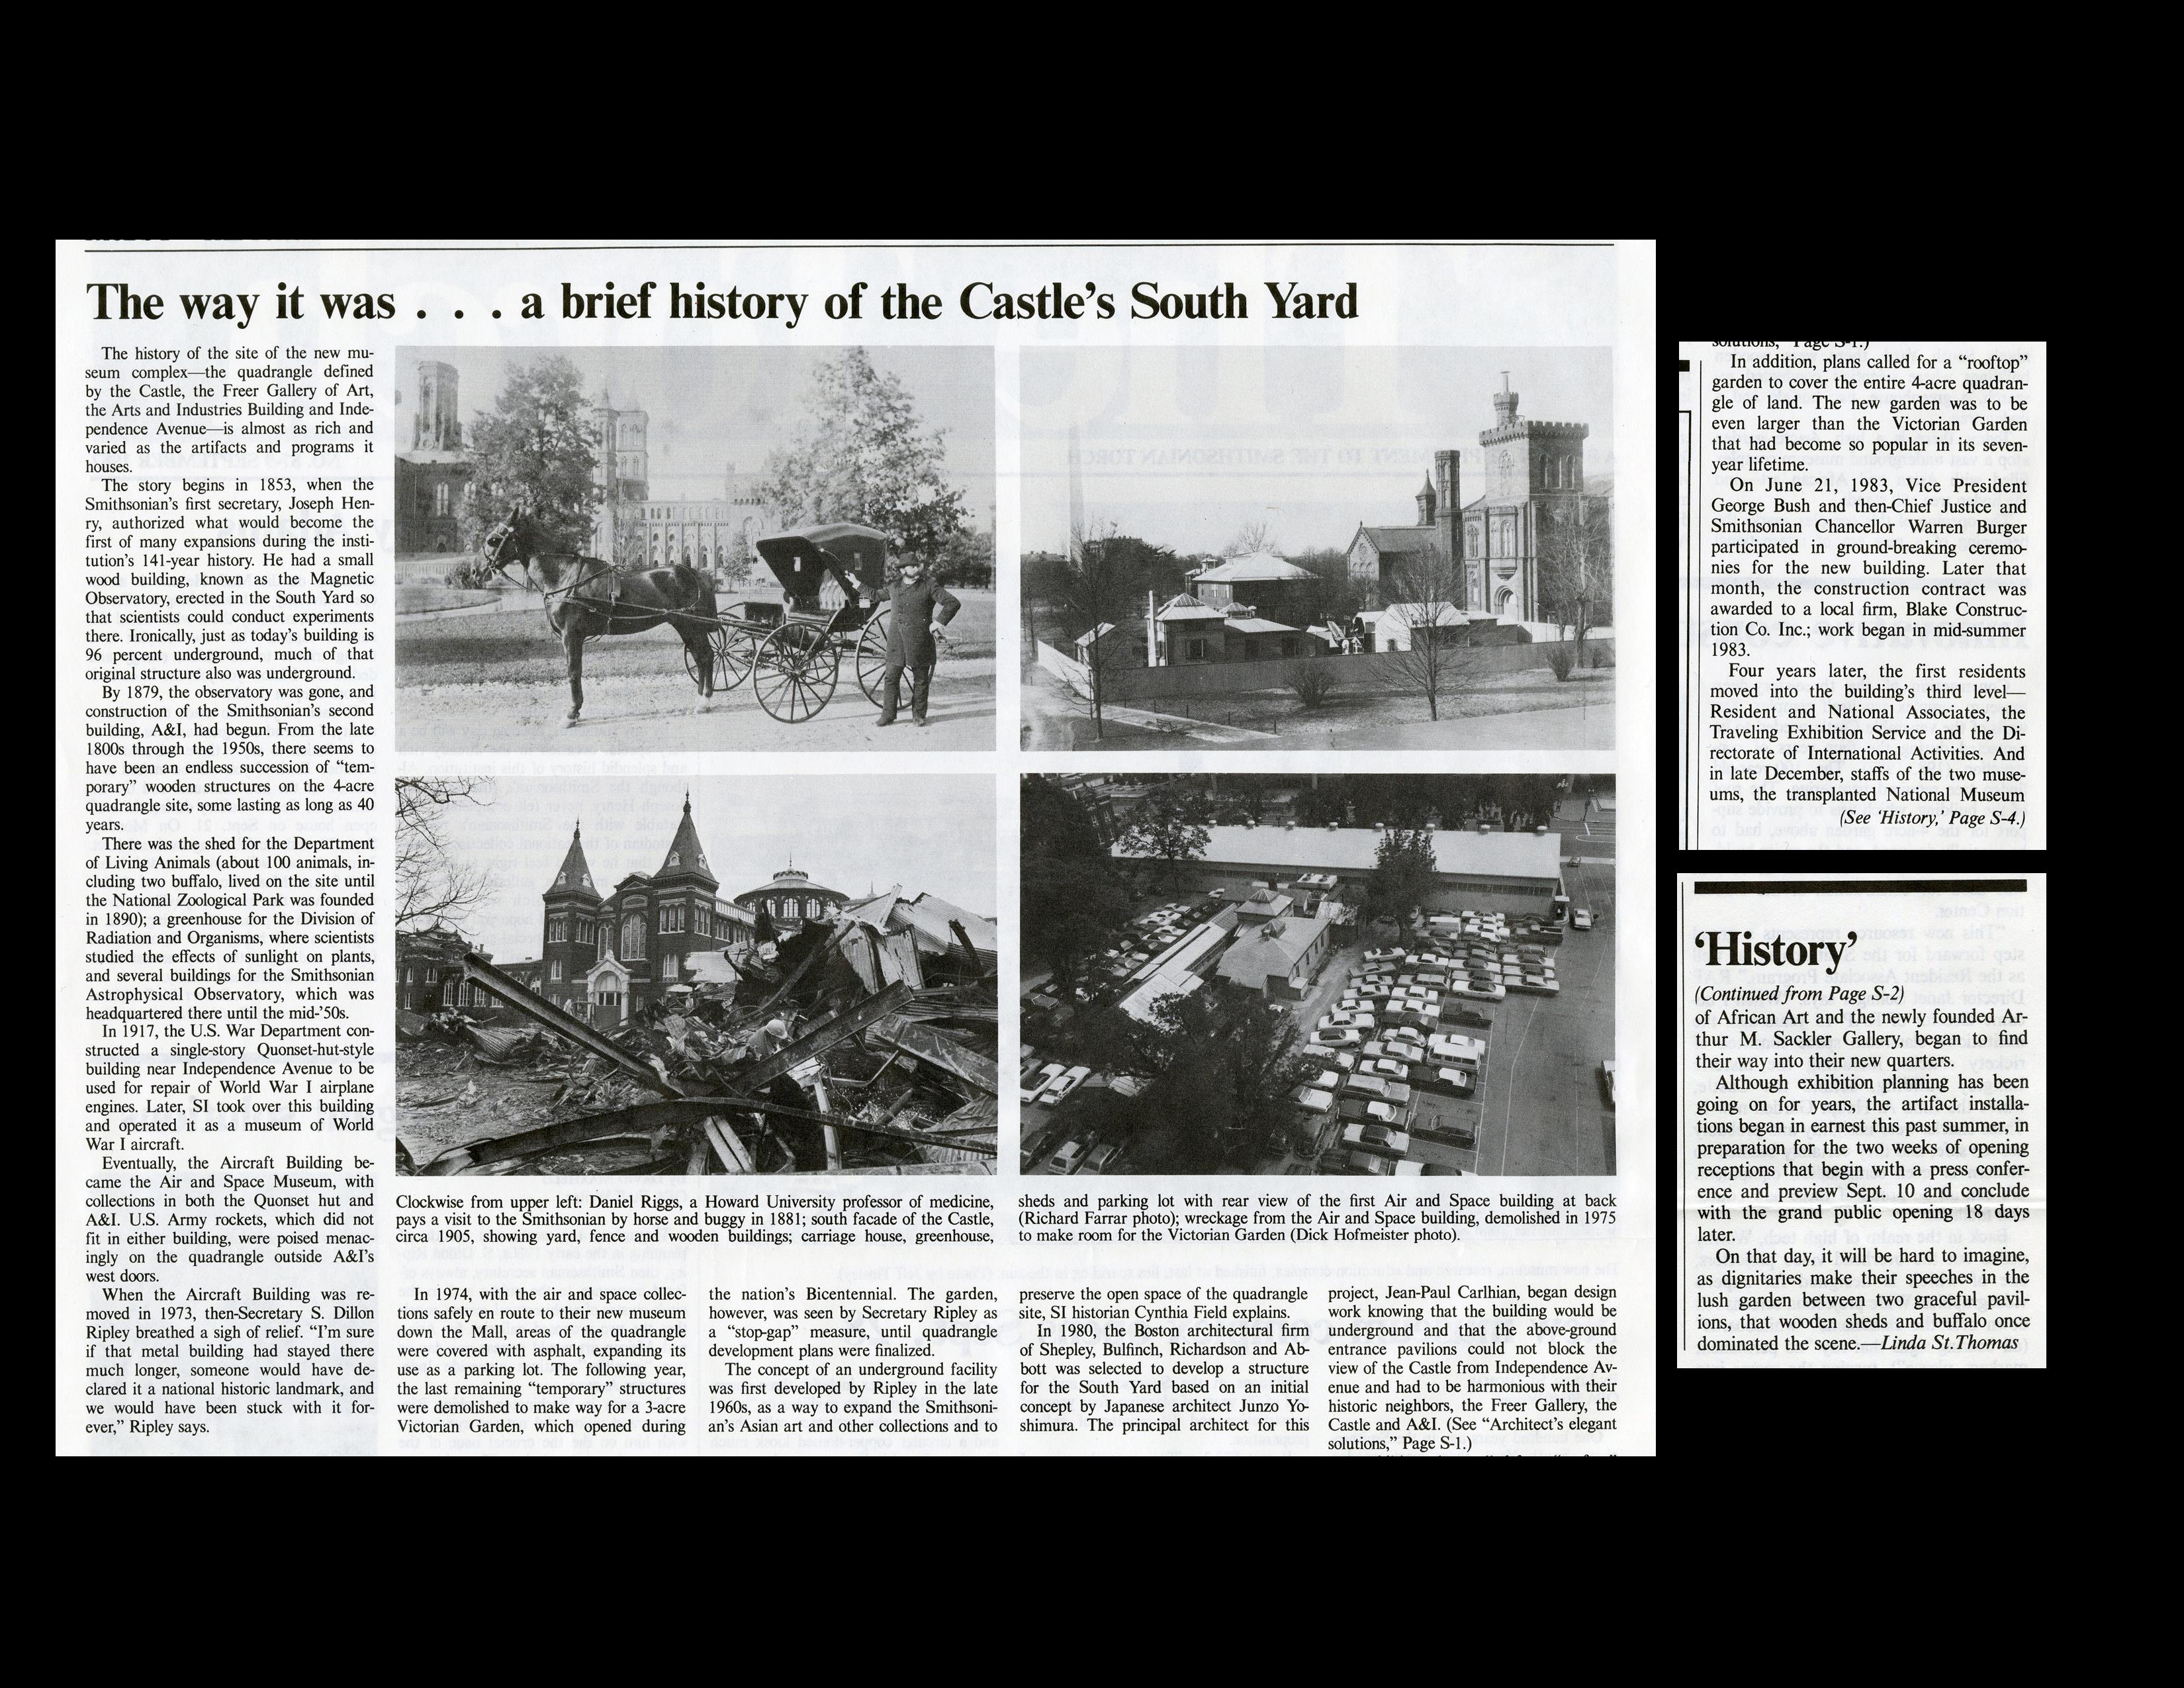 """The way it was . . . a brief history of the Castle's South Yard"" - Quadrangle Special Supplement, T"